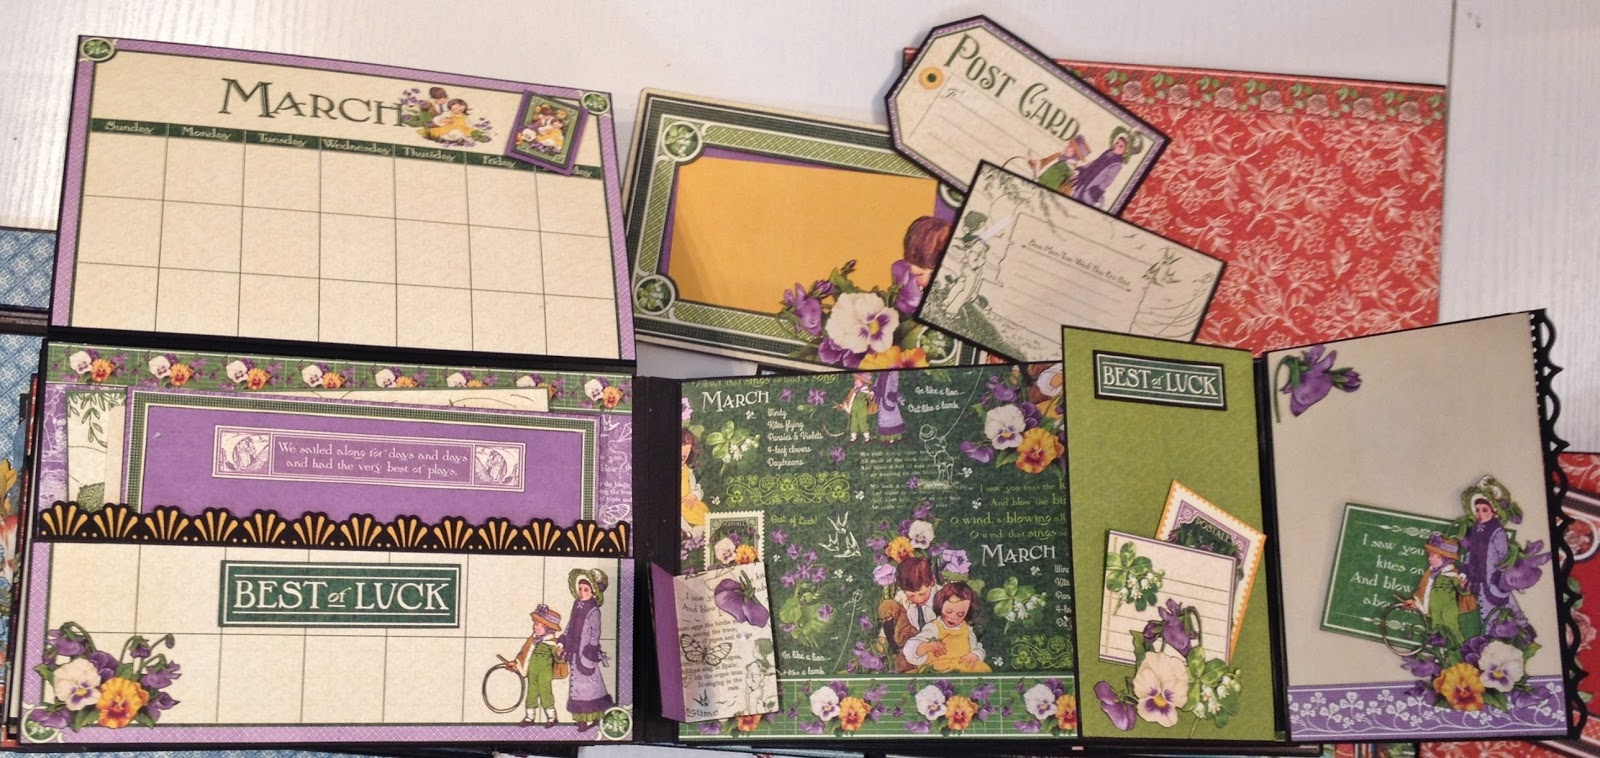 Scrapbook ideas calendar pages - All The Pages Are Build Up The Same Way With The Same Tags Photo Mats And Calendar